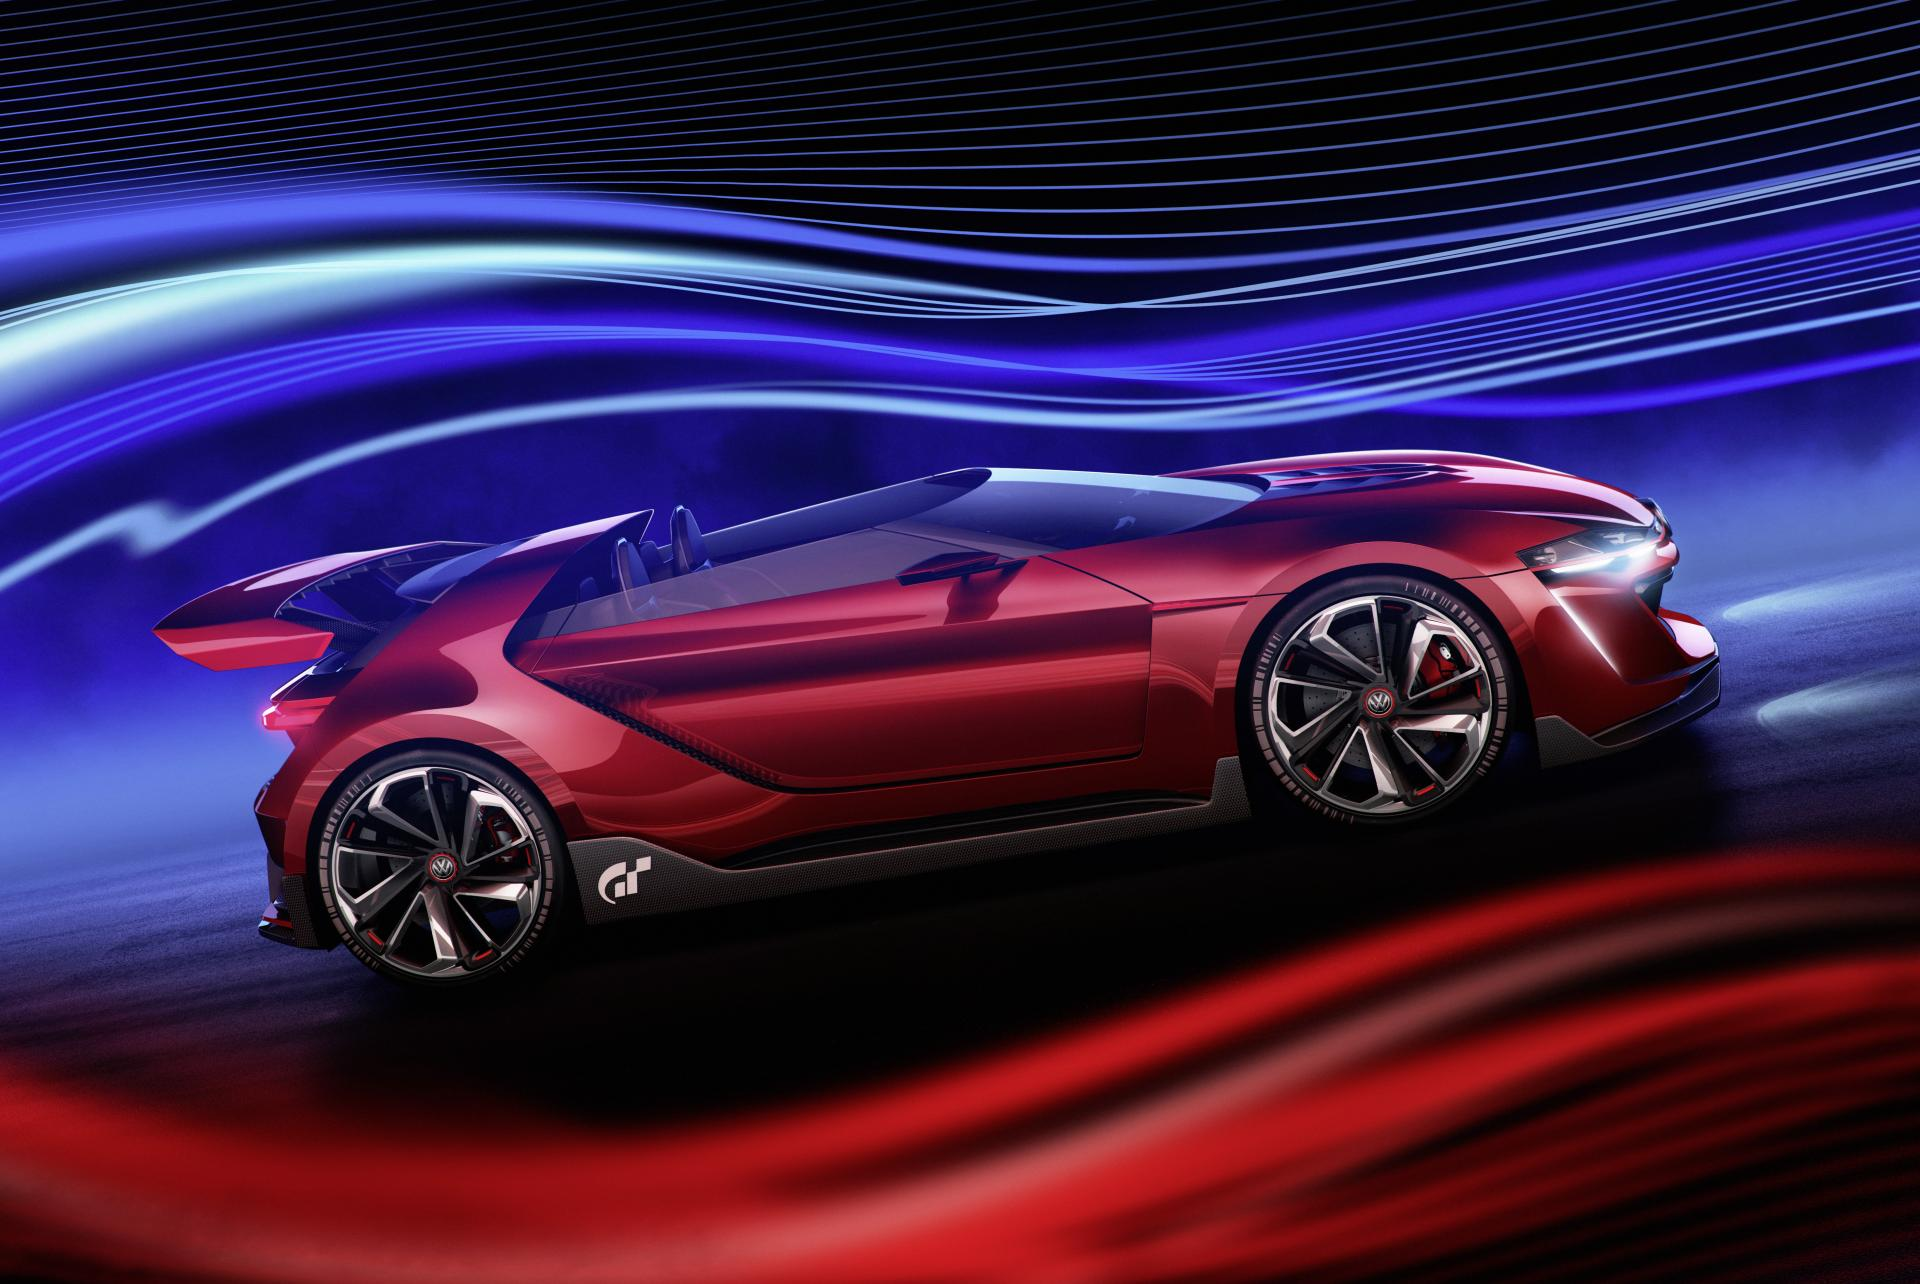 2014 Volkswagen GTI Roadster Concept News and Information Research